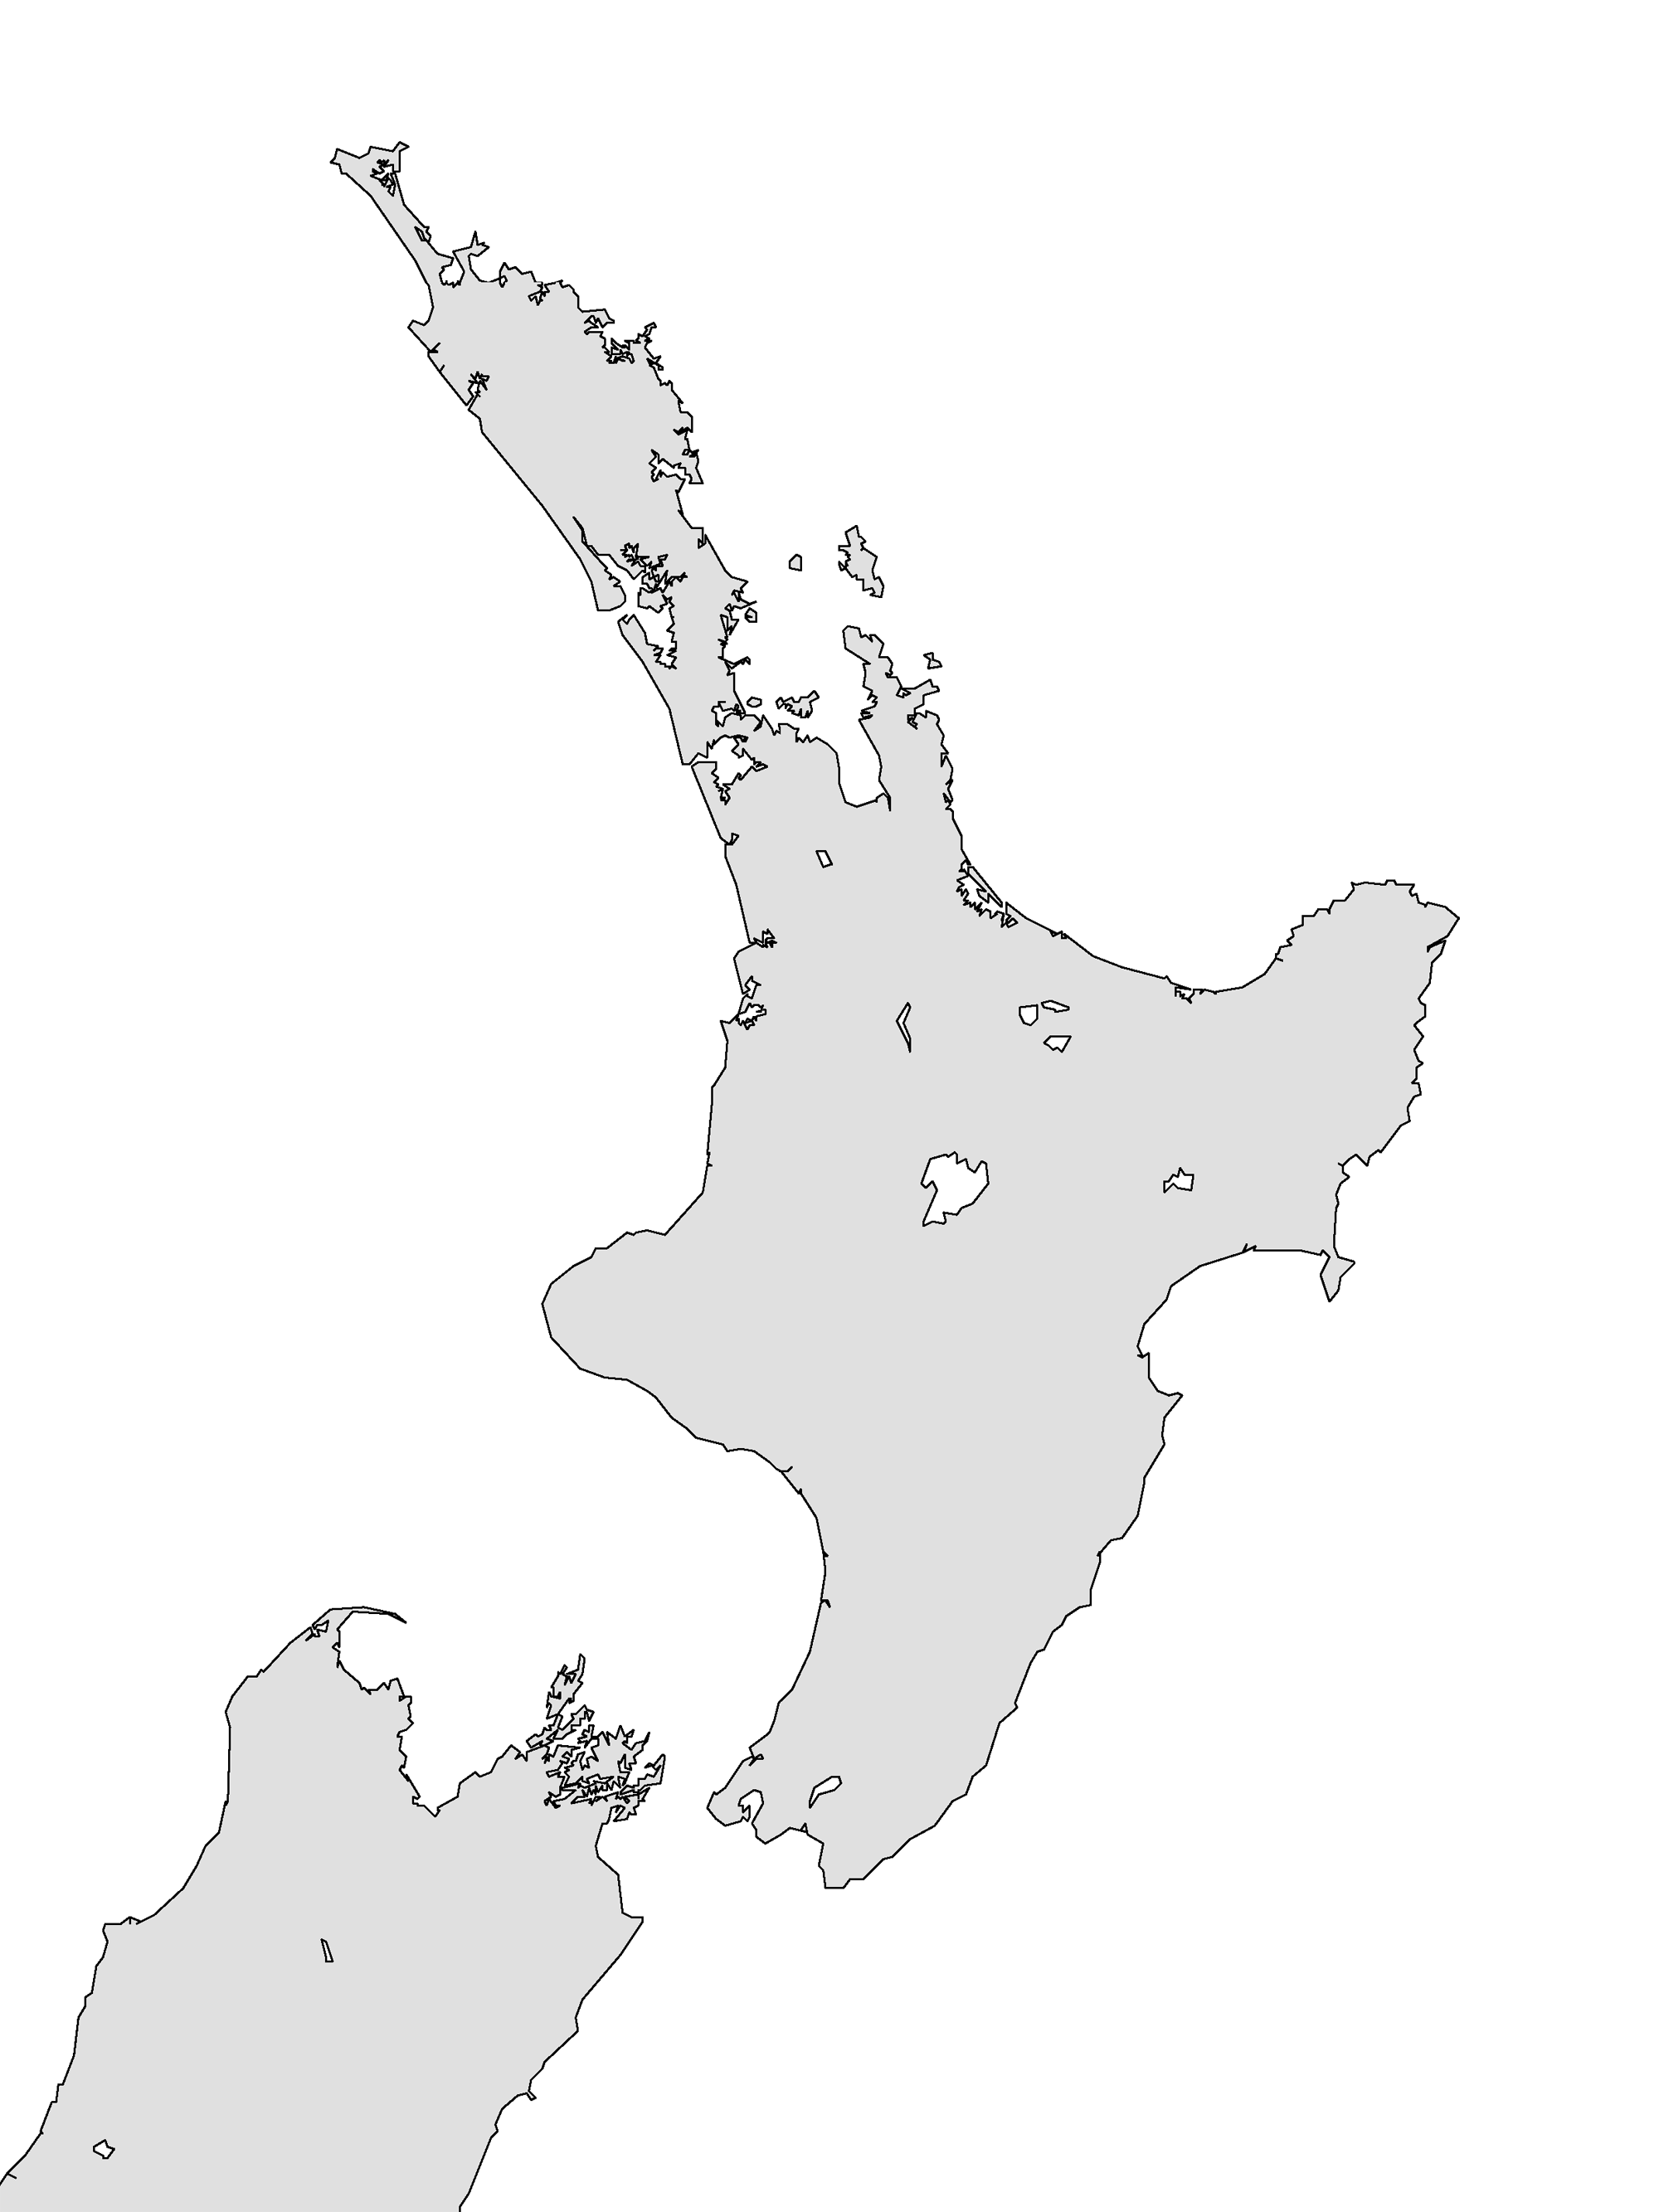 Line Drawing New Zealand Map : File new zealand north island outline